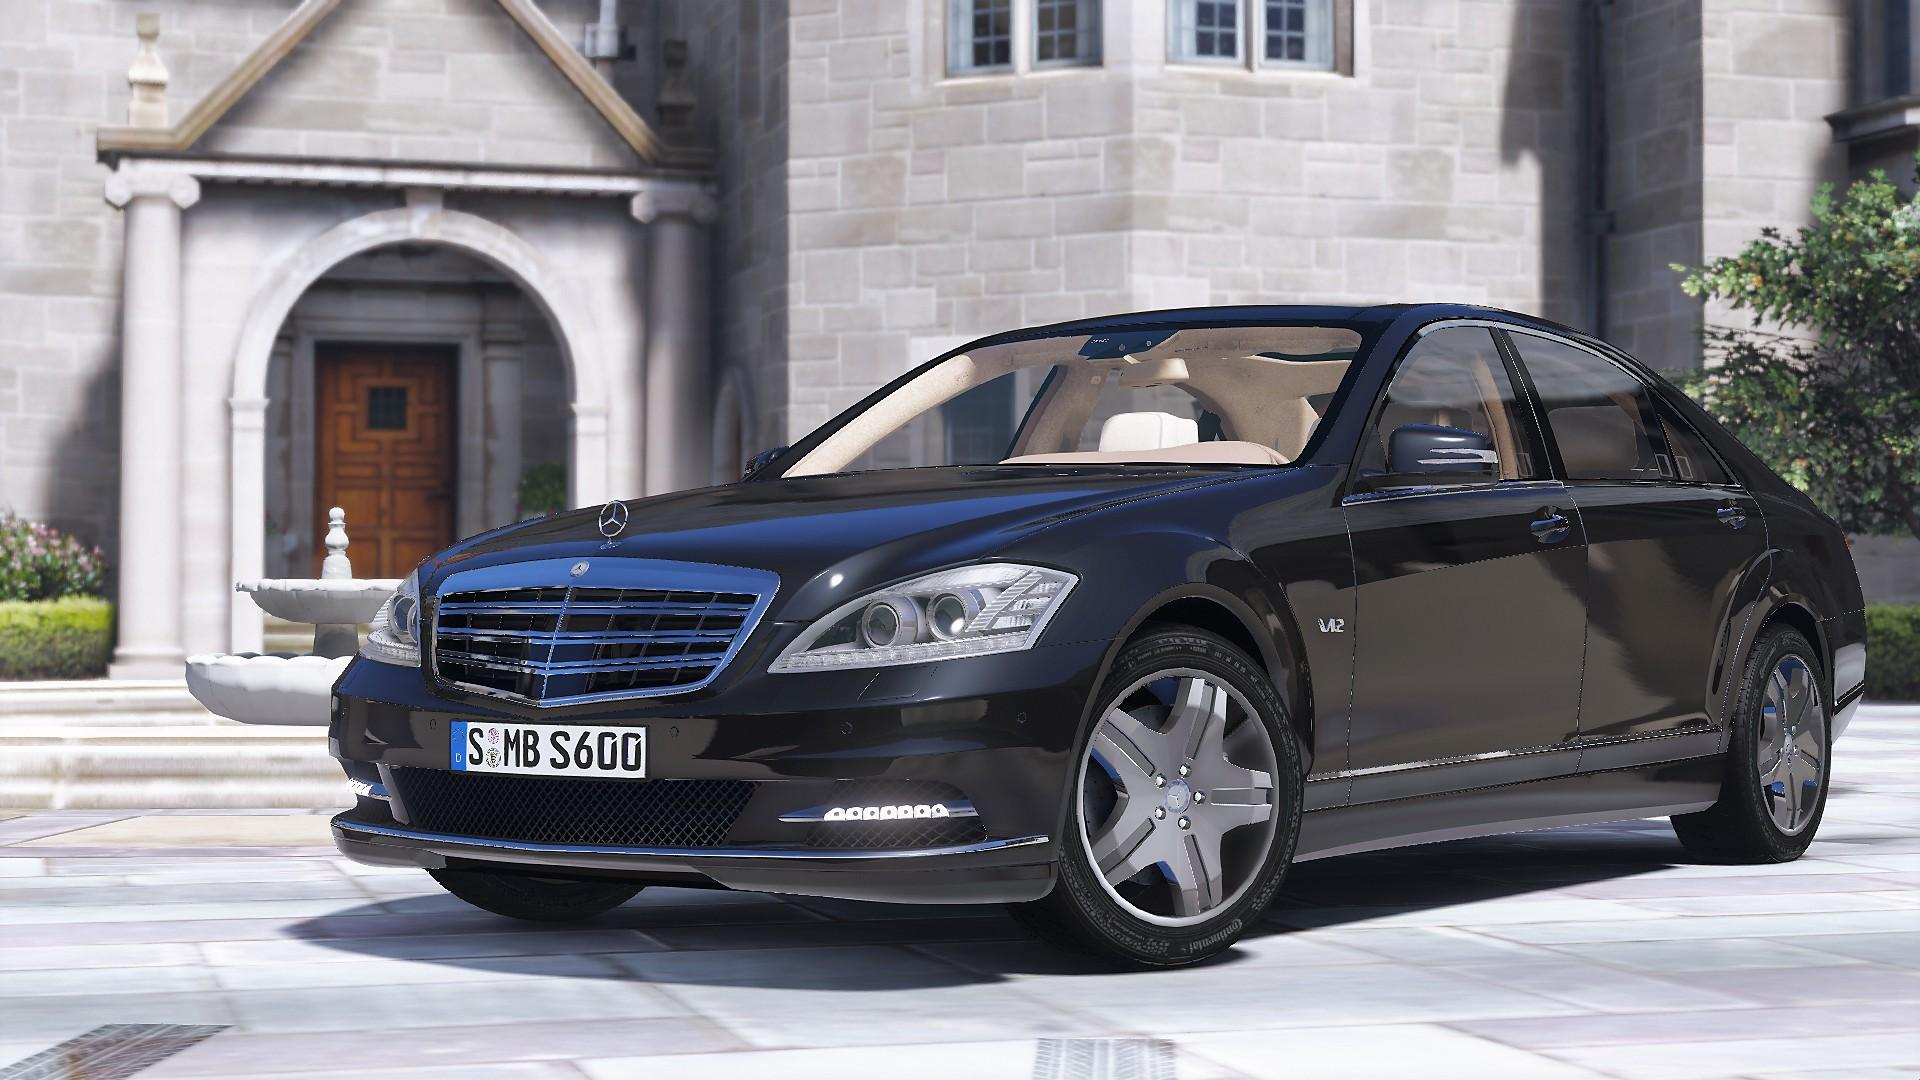 2010 mercedes benz s600 l w221 add on tuning gta5 for S600 mercedes benz